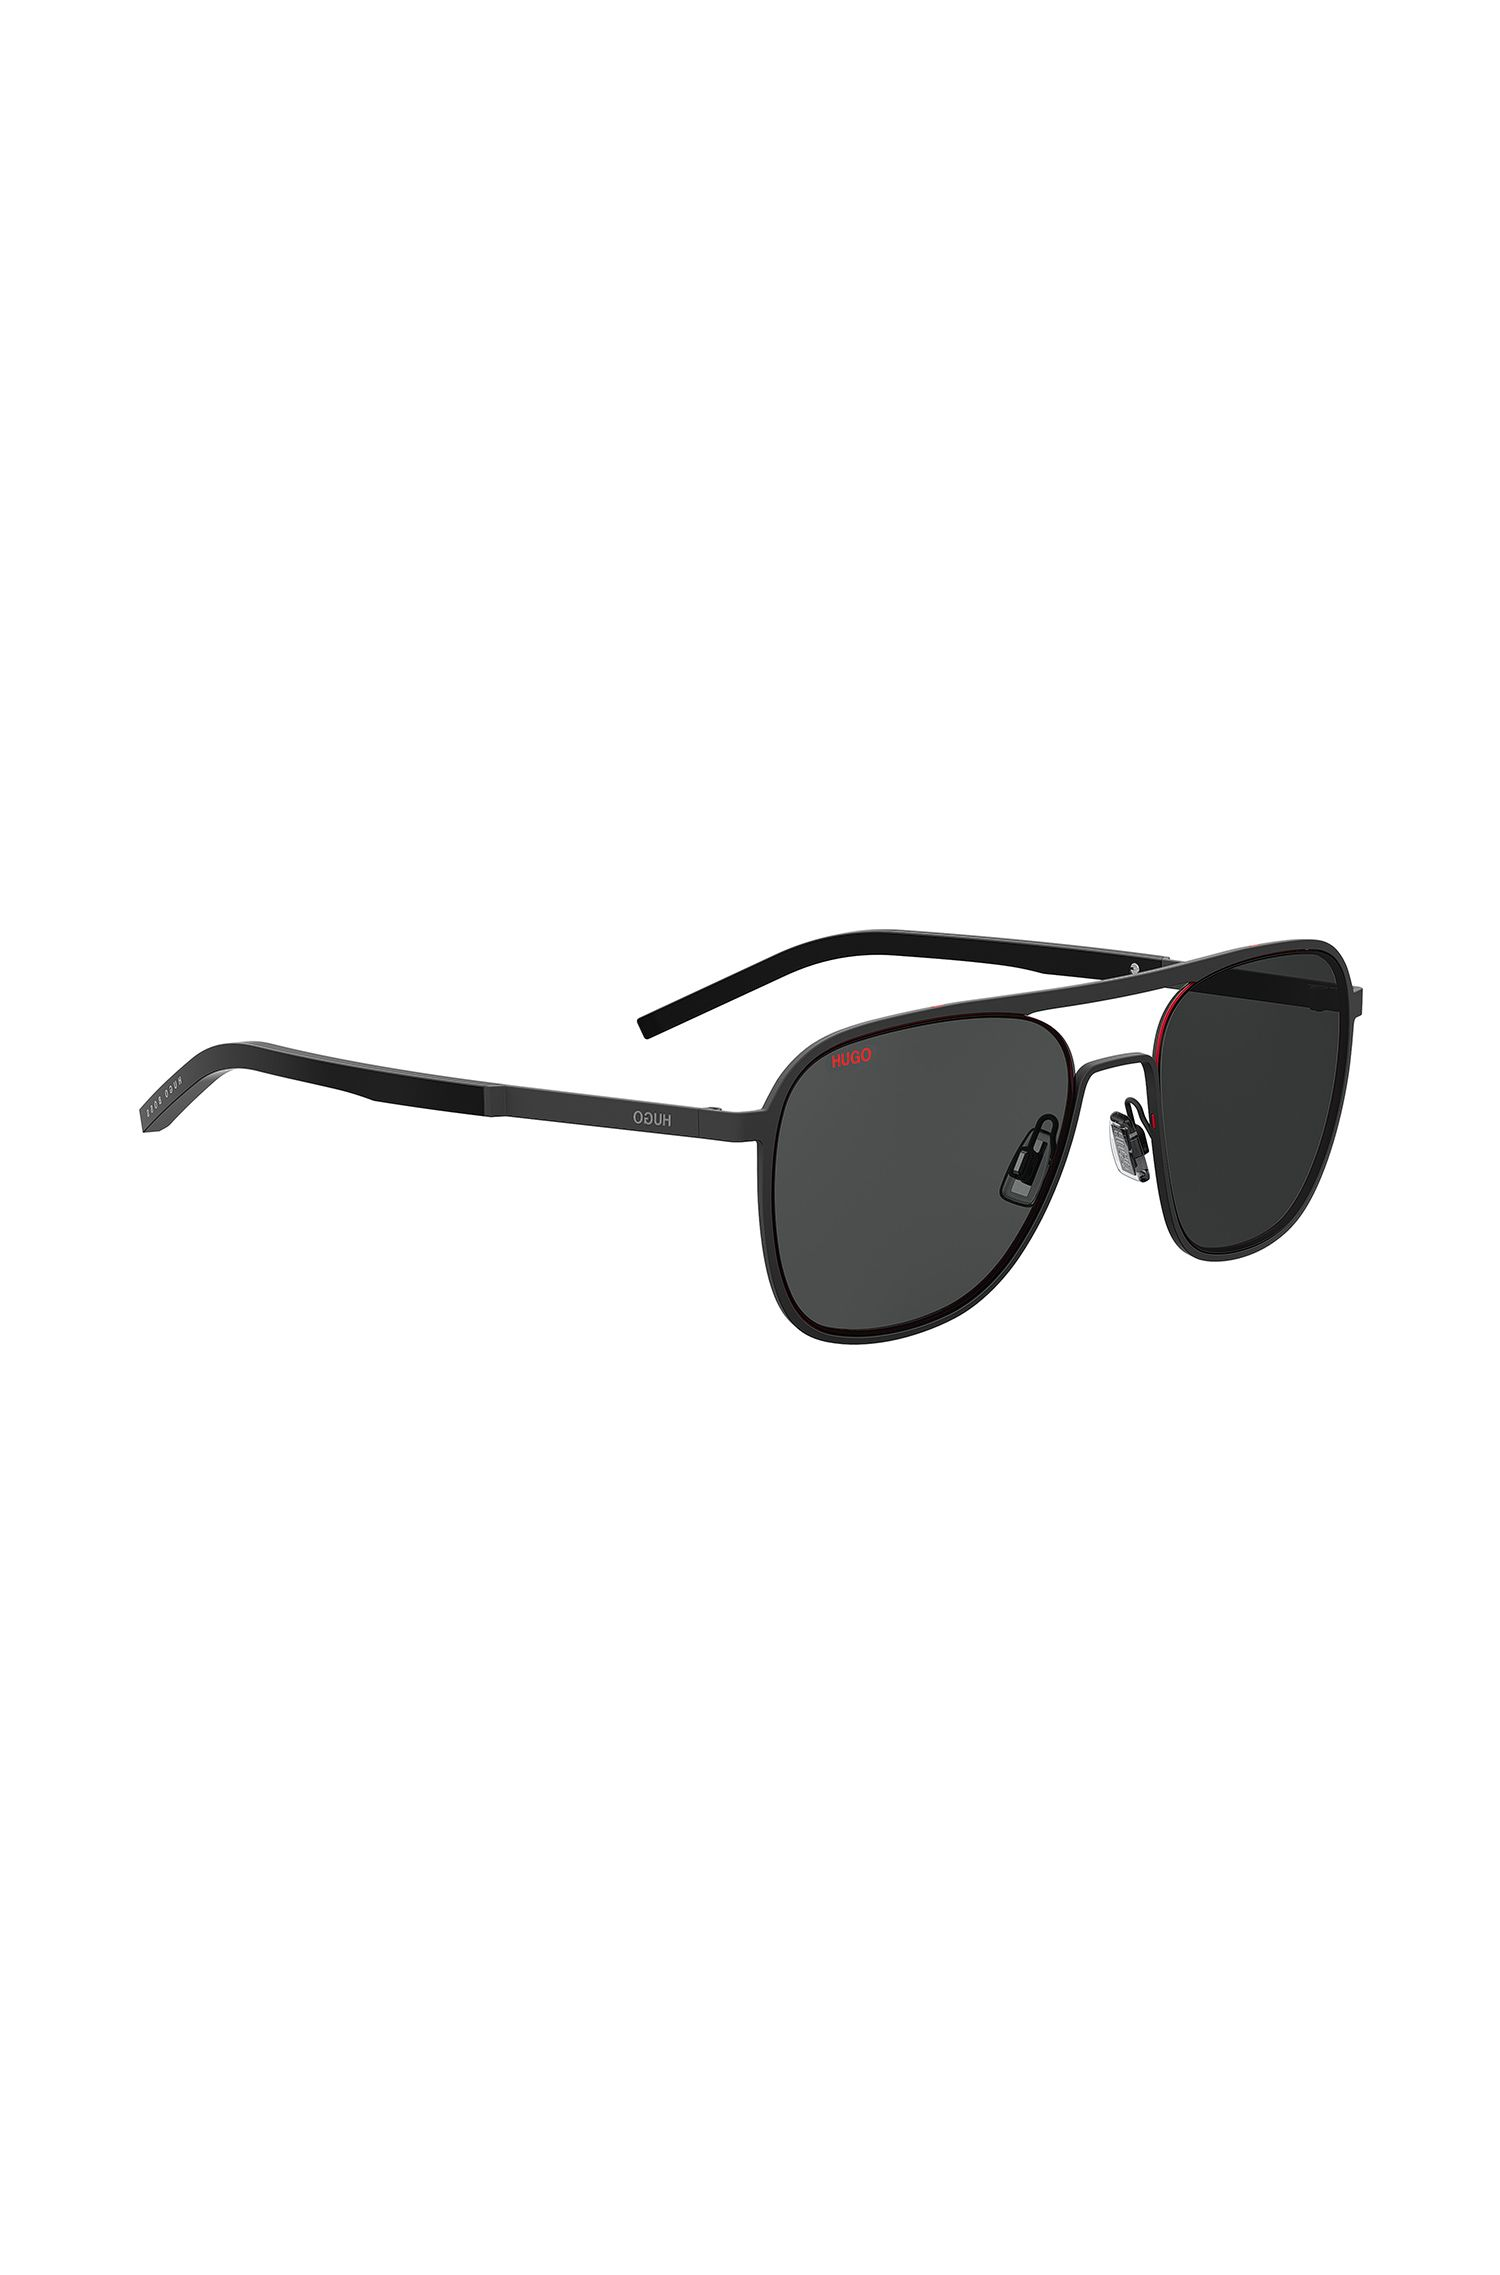 Black aviator sunglasses with double bridge, Black